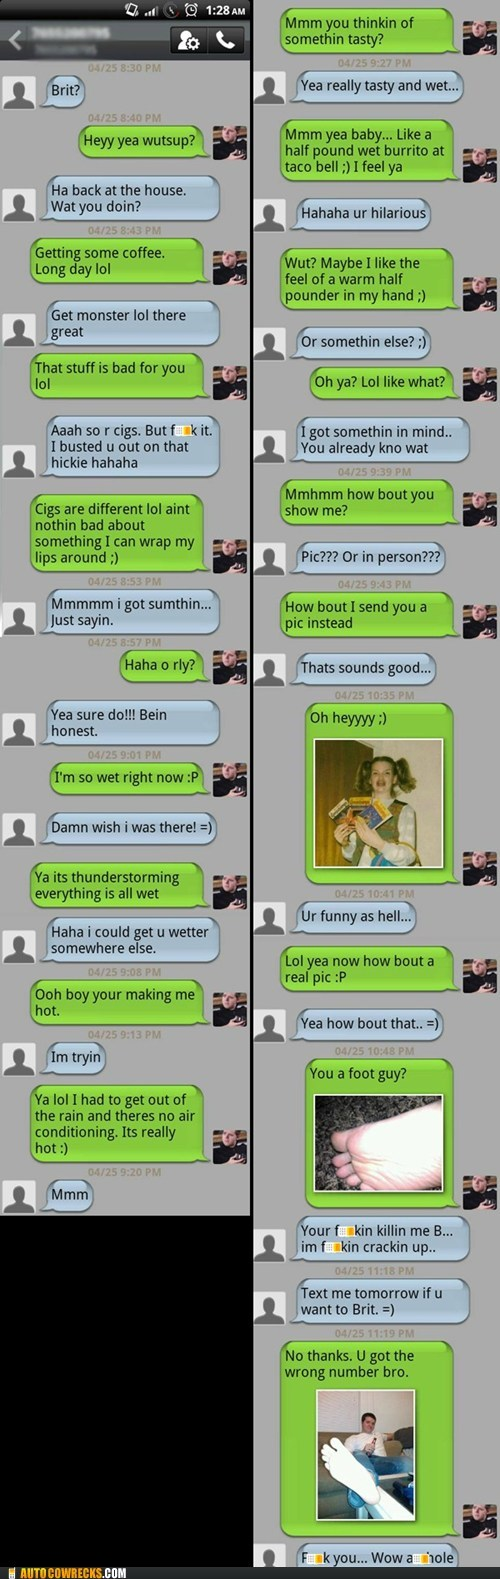 android,sexting,wrong number